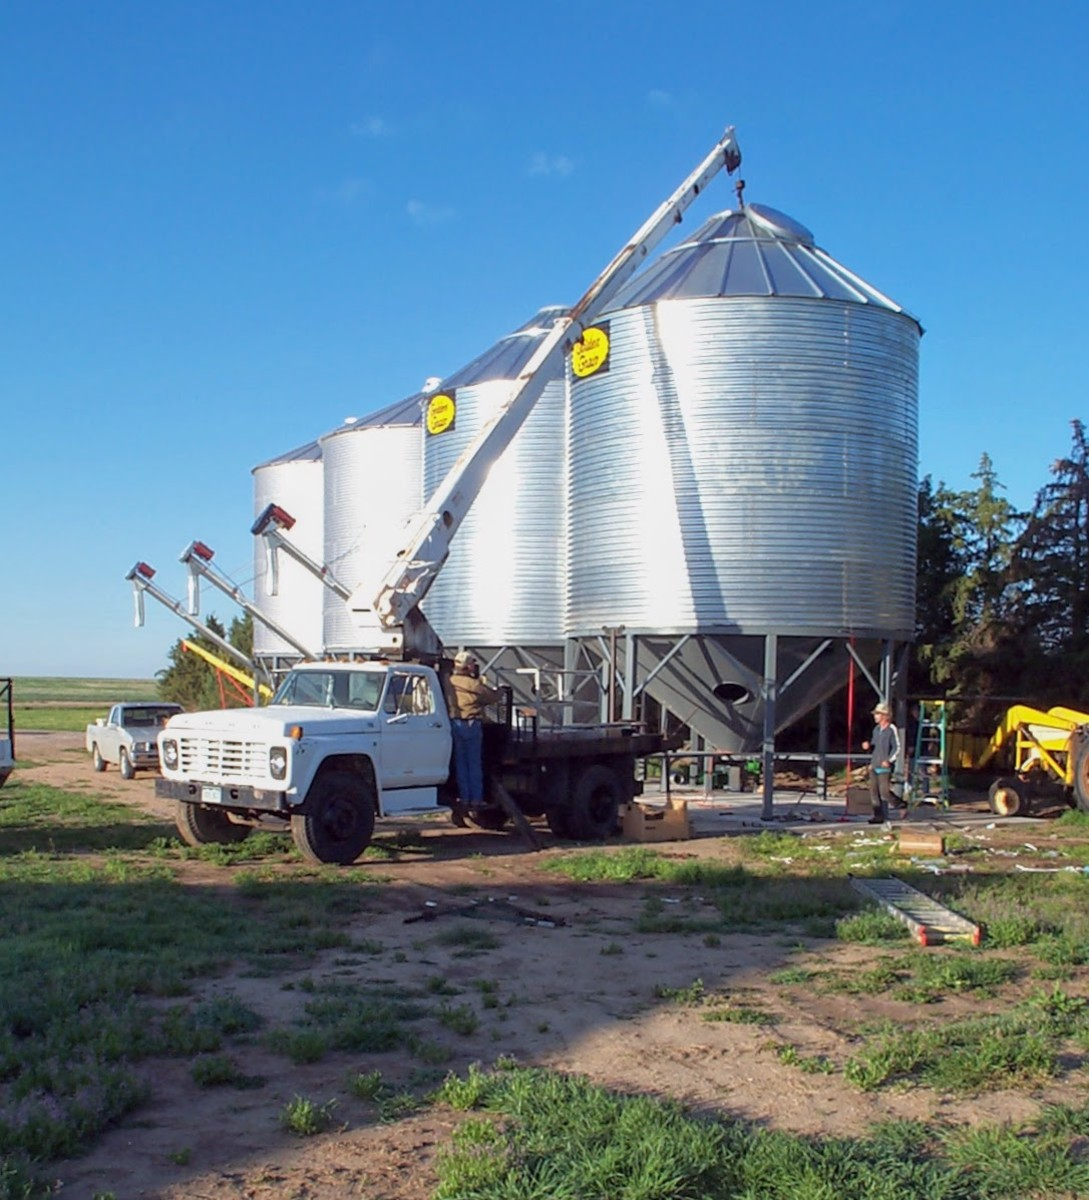 How to Build a Grain Bin with a Hopper--Lifting and Securing Bin to Hopper: An Illustrated Guide